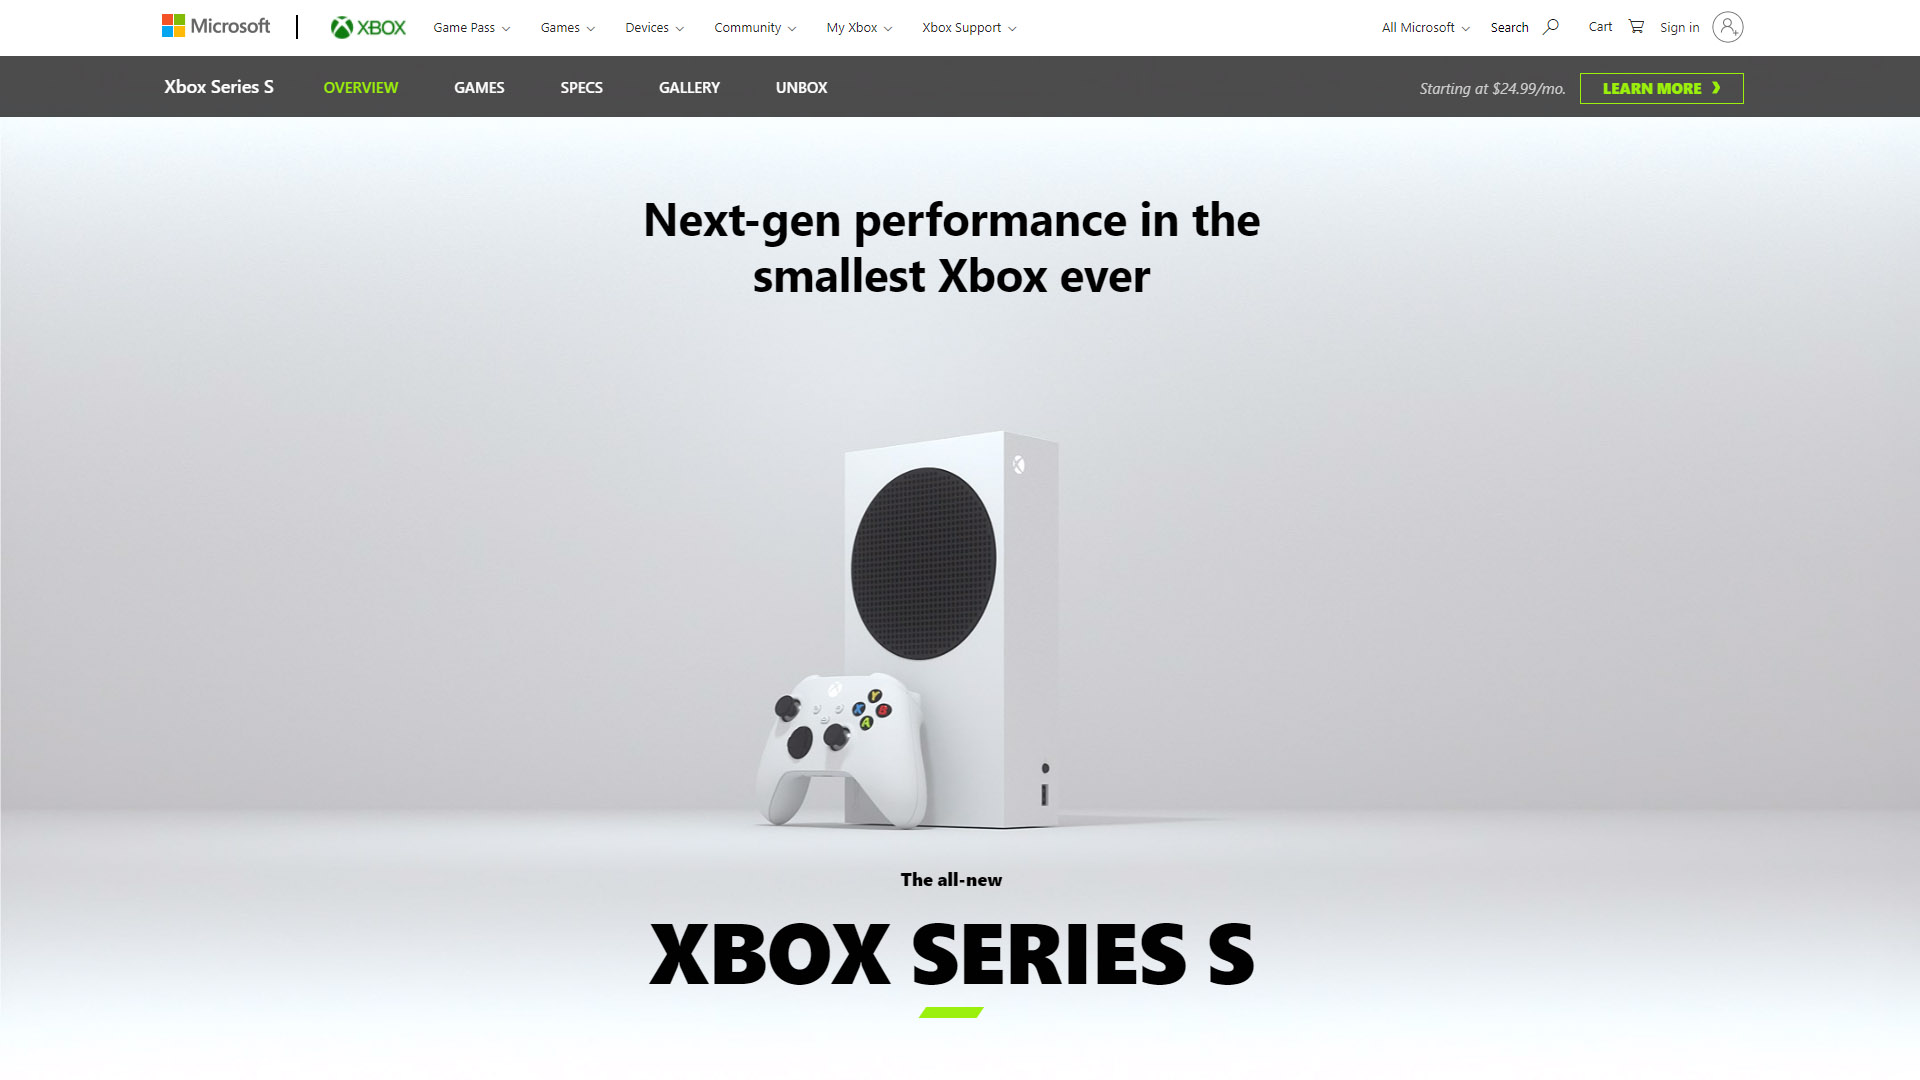 Xbox Series Page 09 14 20 002